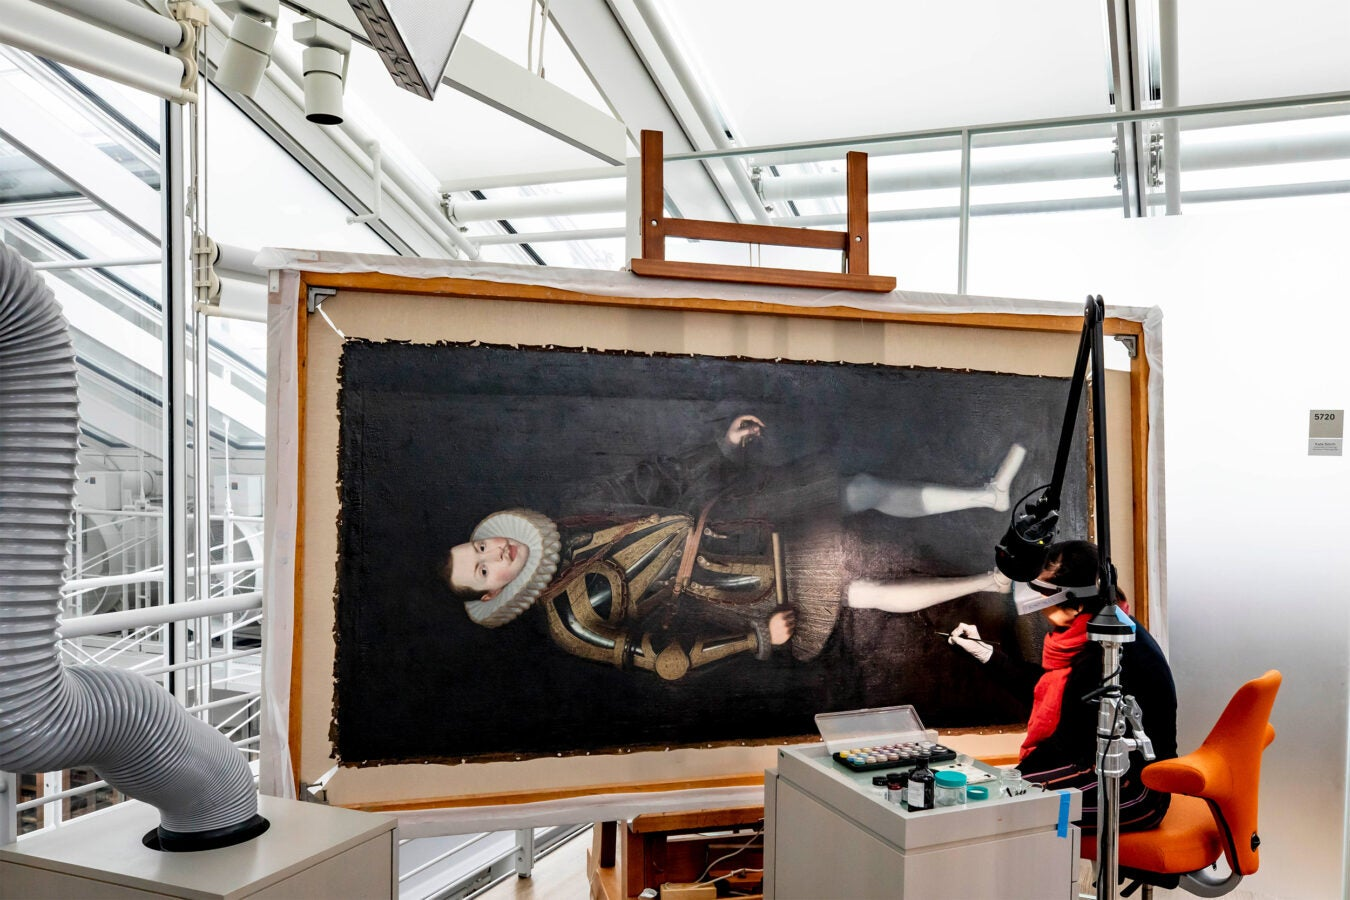 Curator restores a large painting.